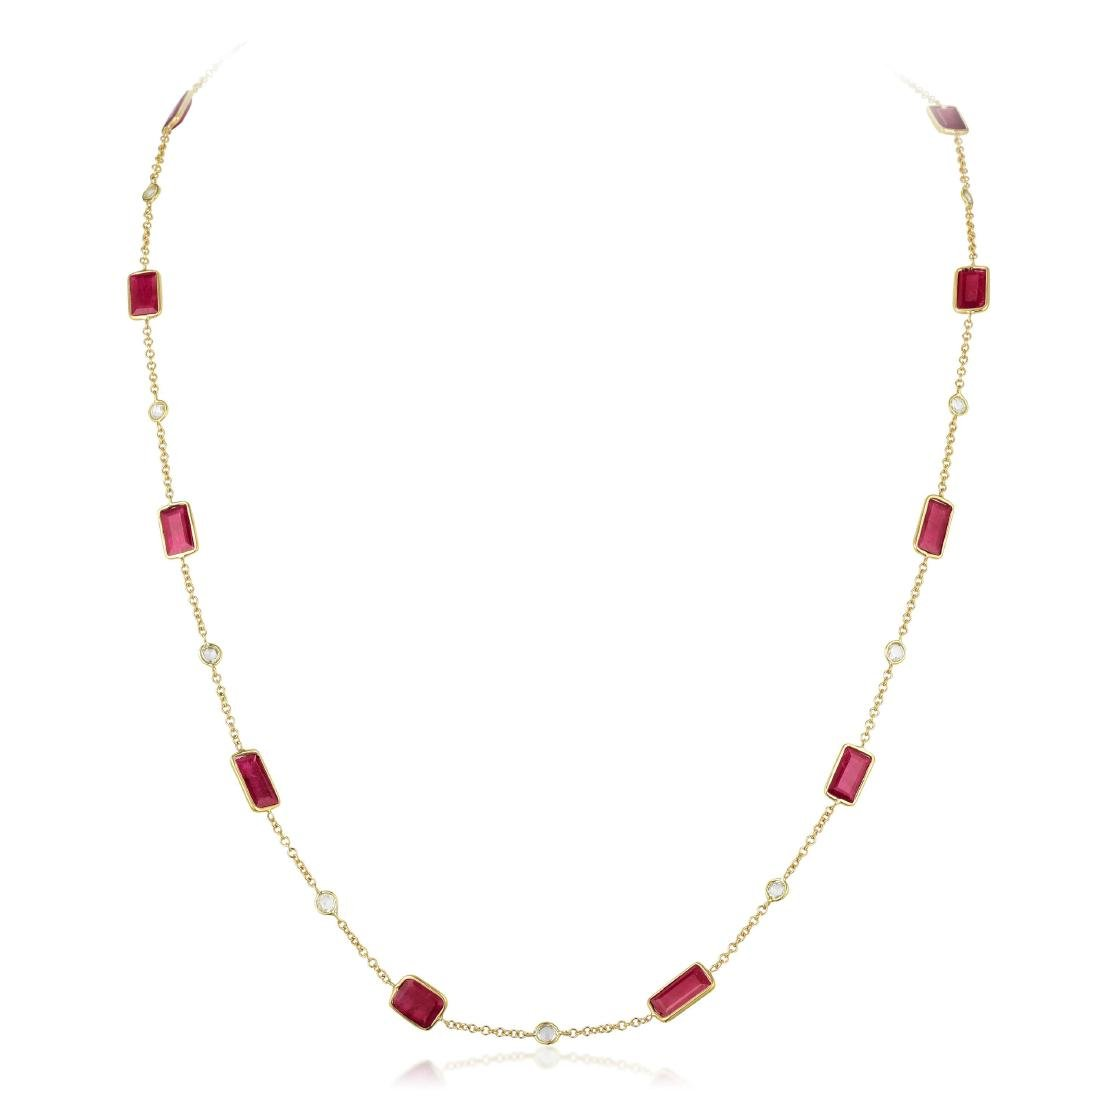 An 18K Gold Ruby and Diamond by the Yard Chain